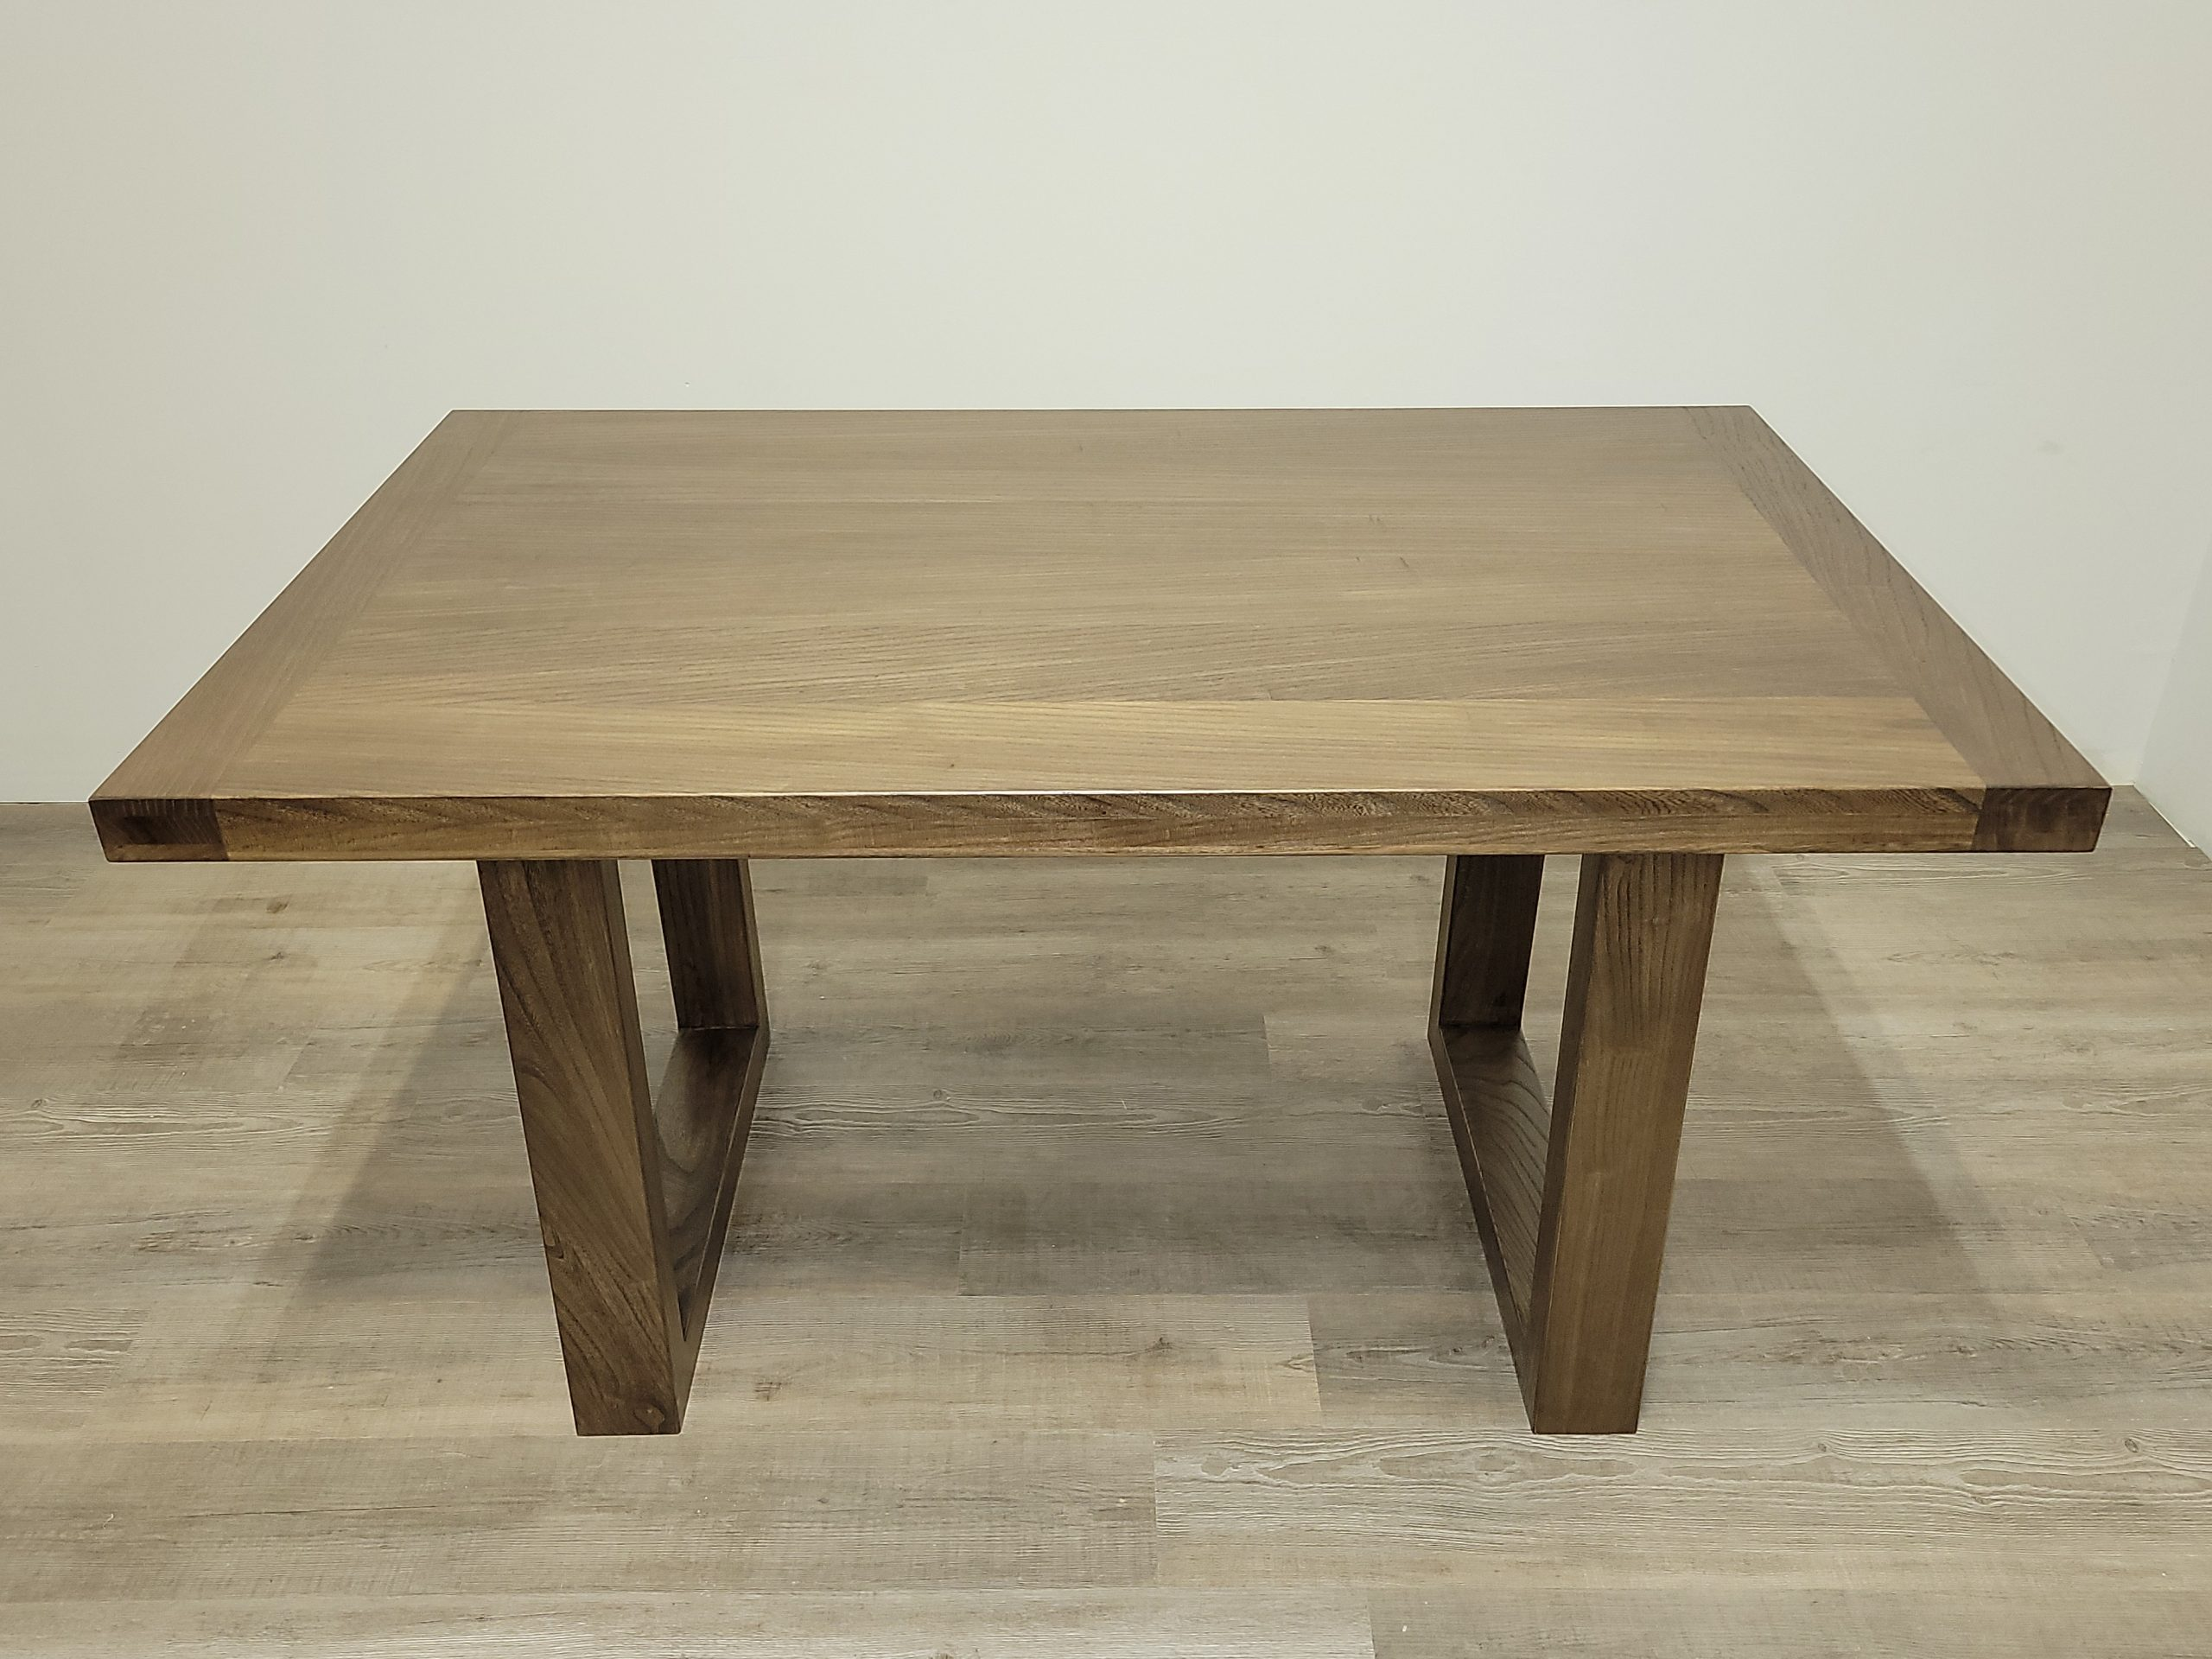 https://competitivewoodcraft.com/wp-content/uploads/2021/03/Coffee-Table-1-scaled.jpg